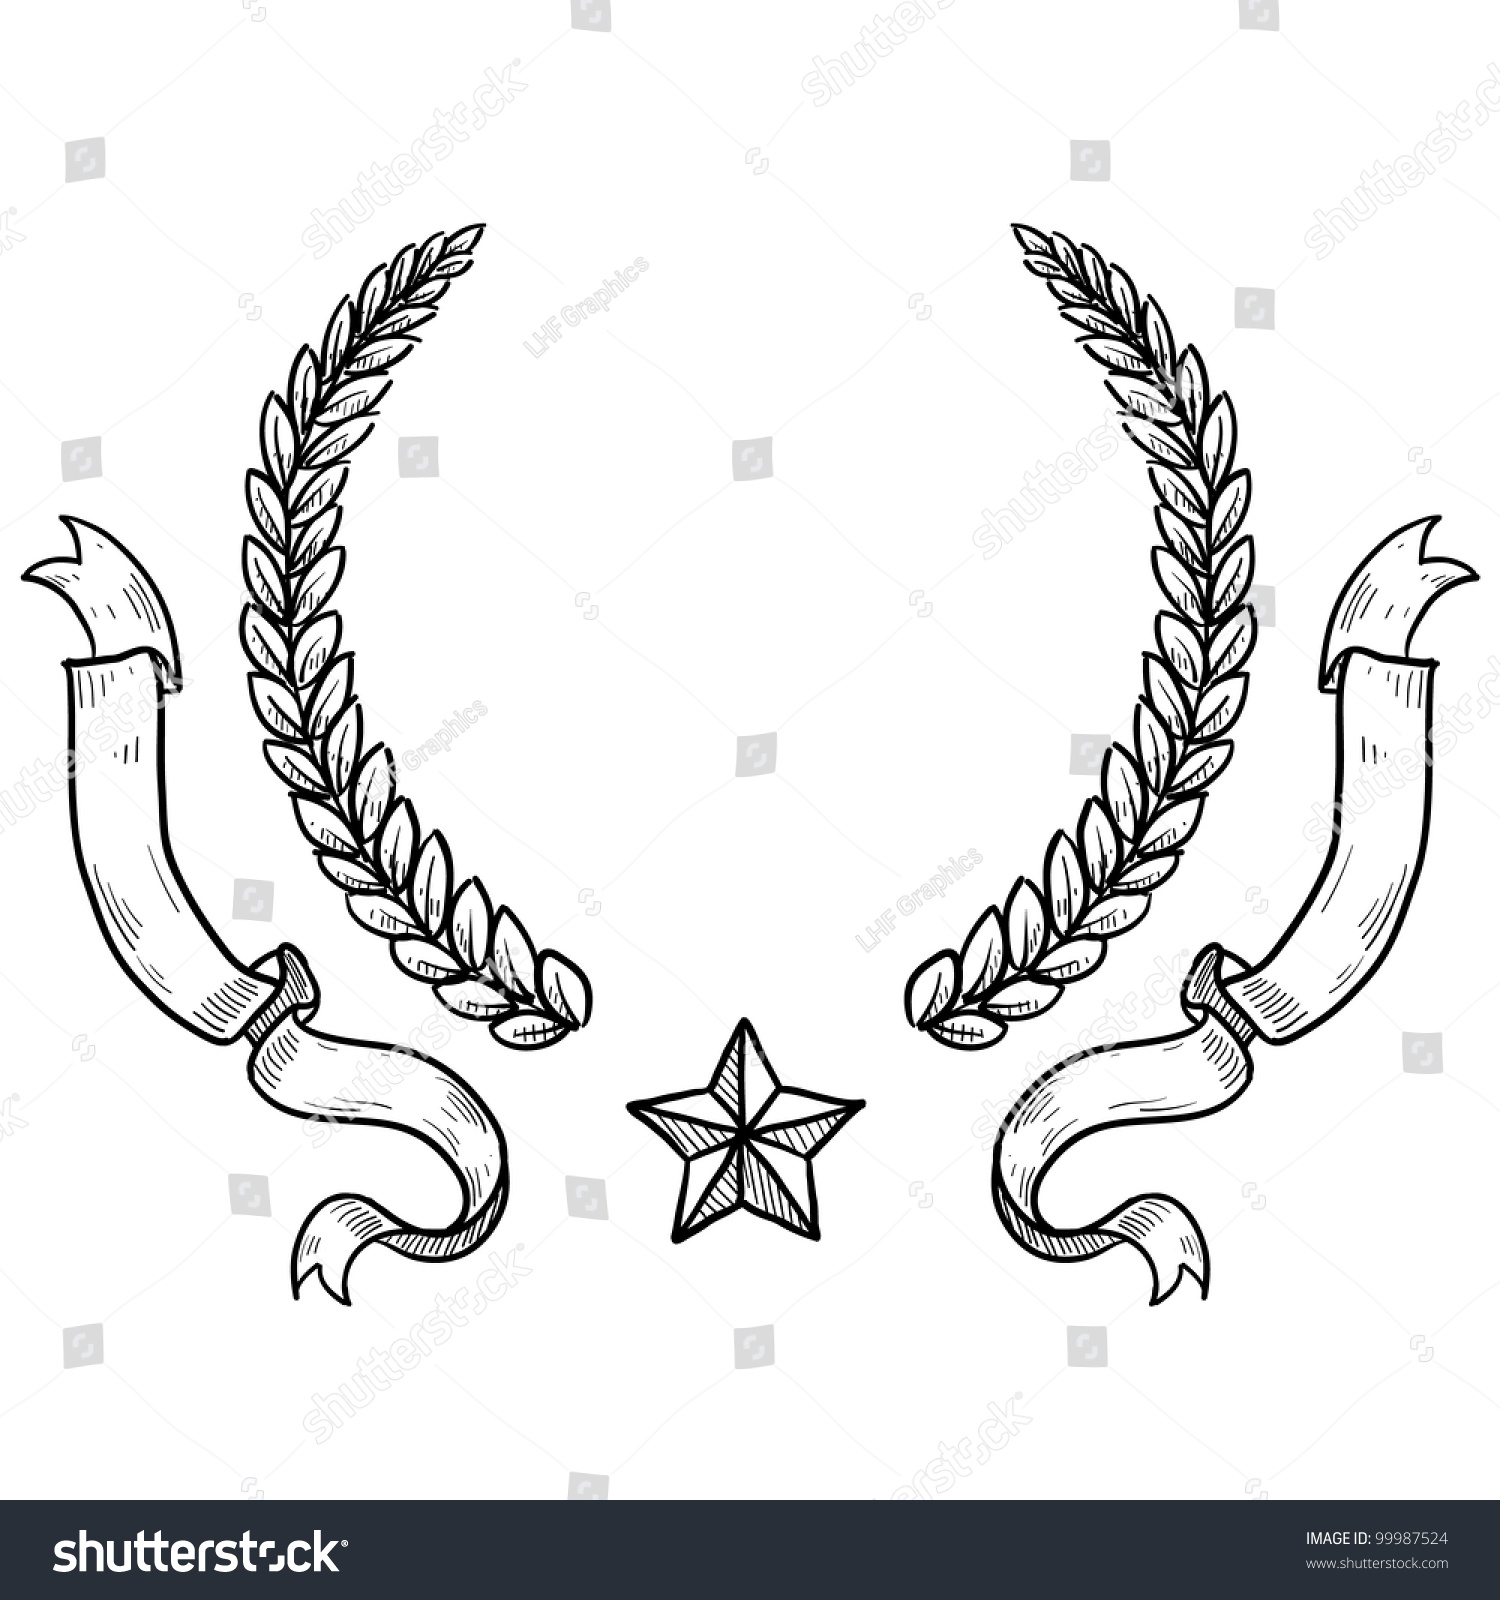 doodle style military insignia crest wreath stock vector  doodle style military insignia crest wreath ribbon and star in vector format